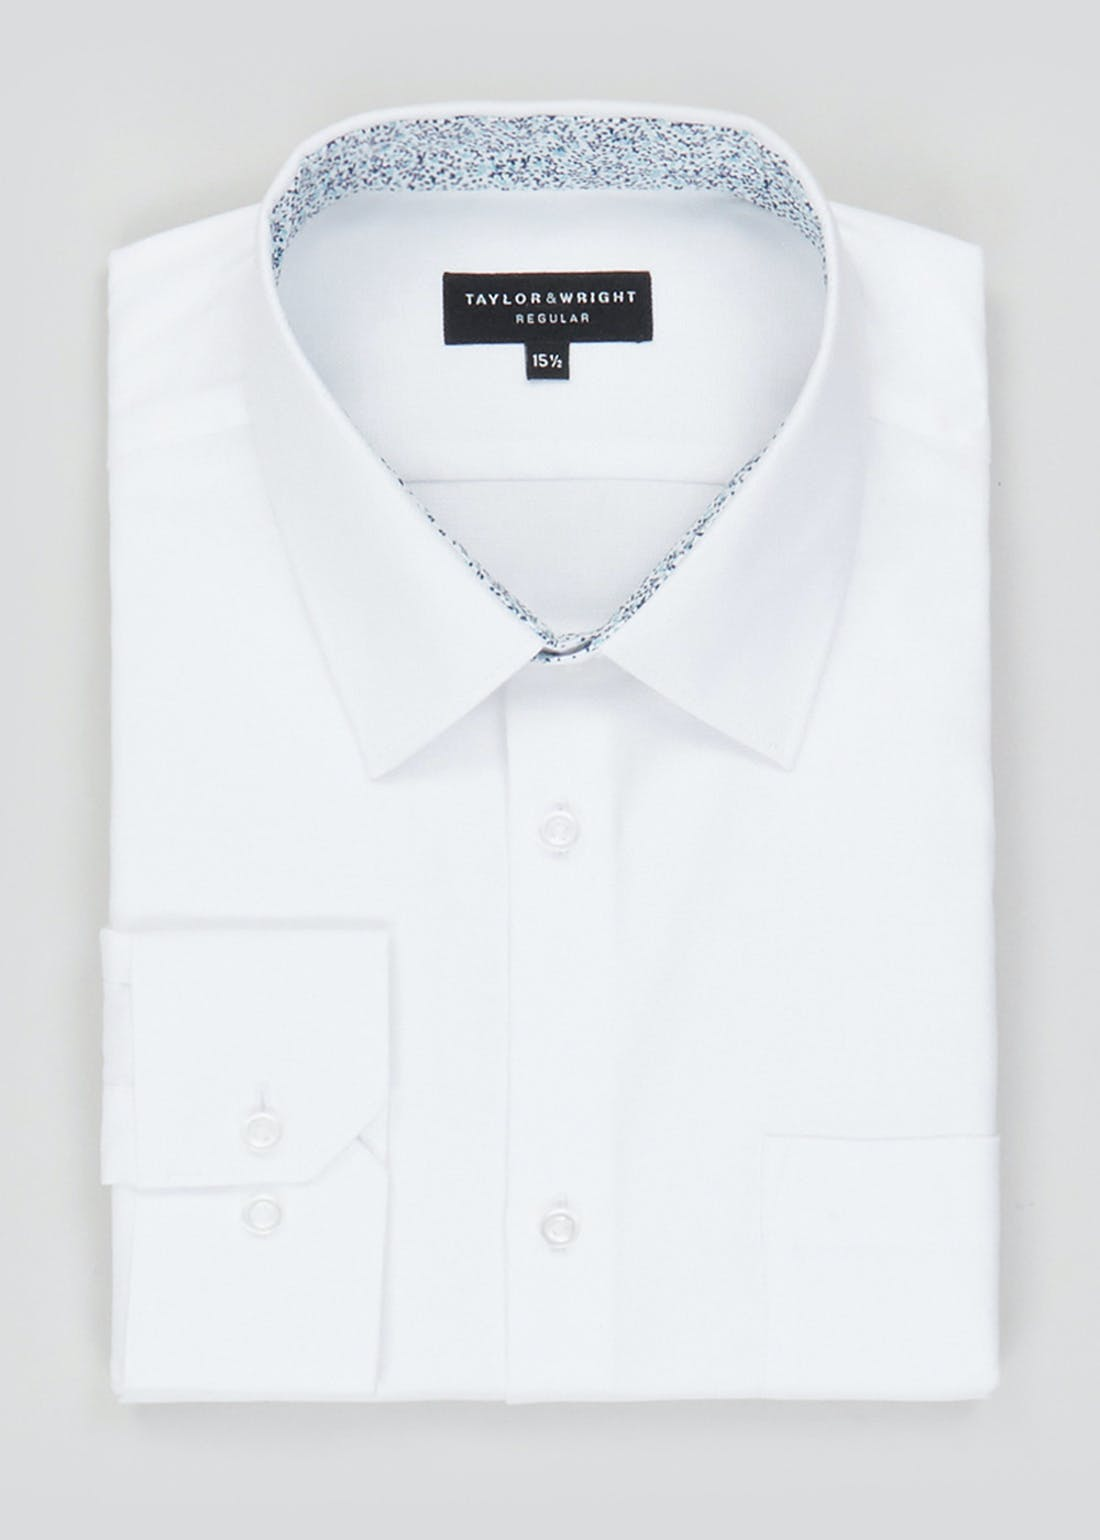 Taylor & Wright Long Sleeve Regular Fit Oxford Shirt